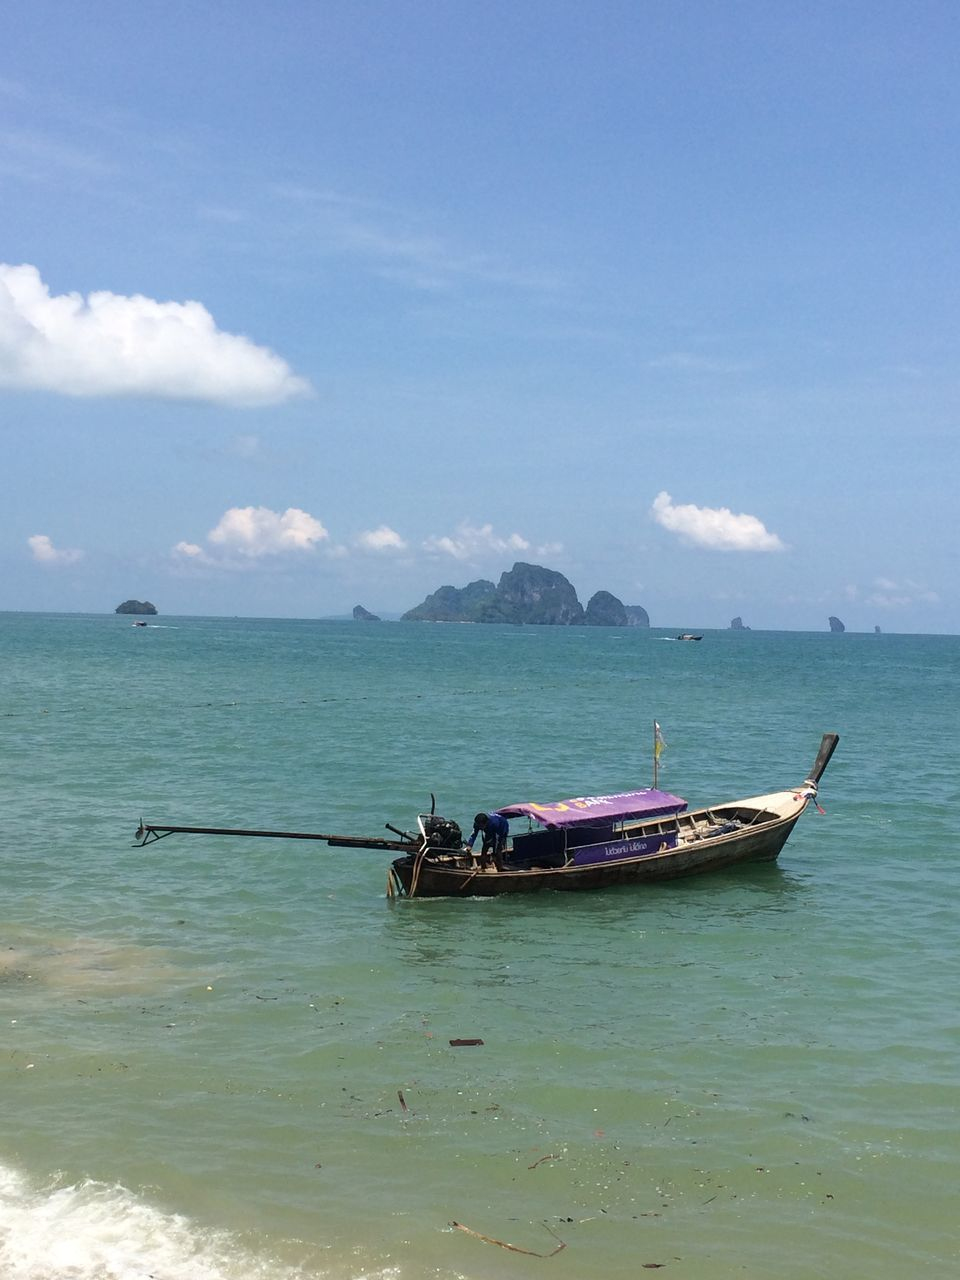 transportation, nautical vessel, water, mode of transport, boat, sky, nature, sea, day, scenics, outdoors, beauty in nature, horizon over water, moored, outrigger, longtail boat, no people